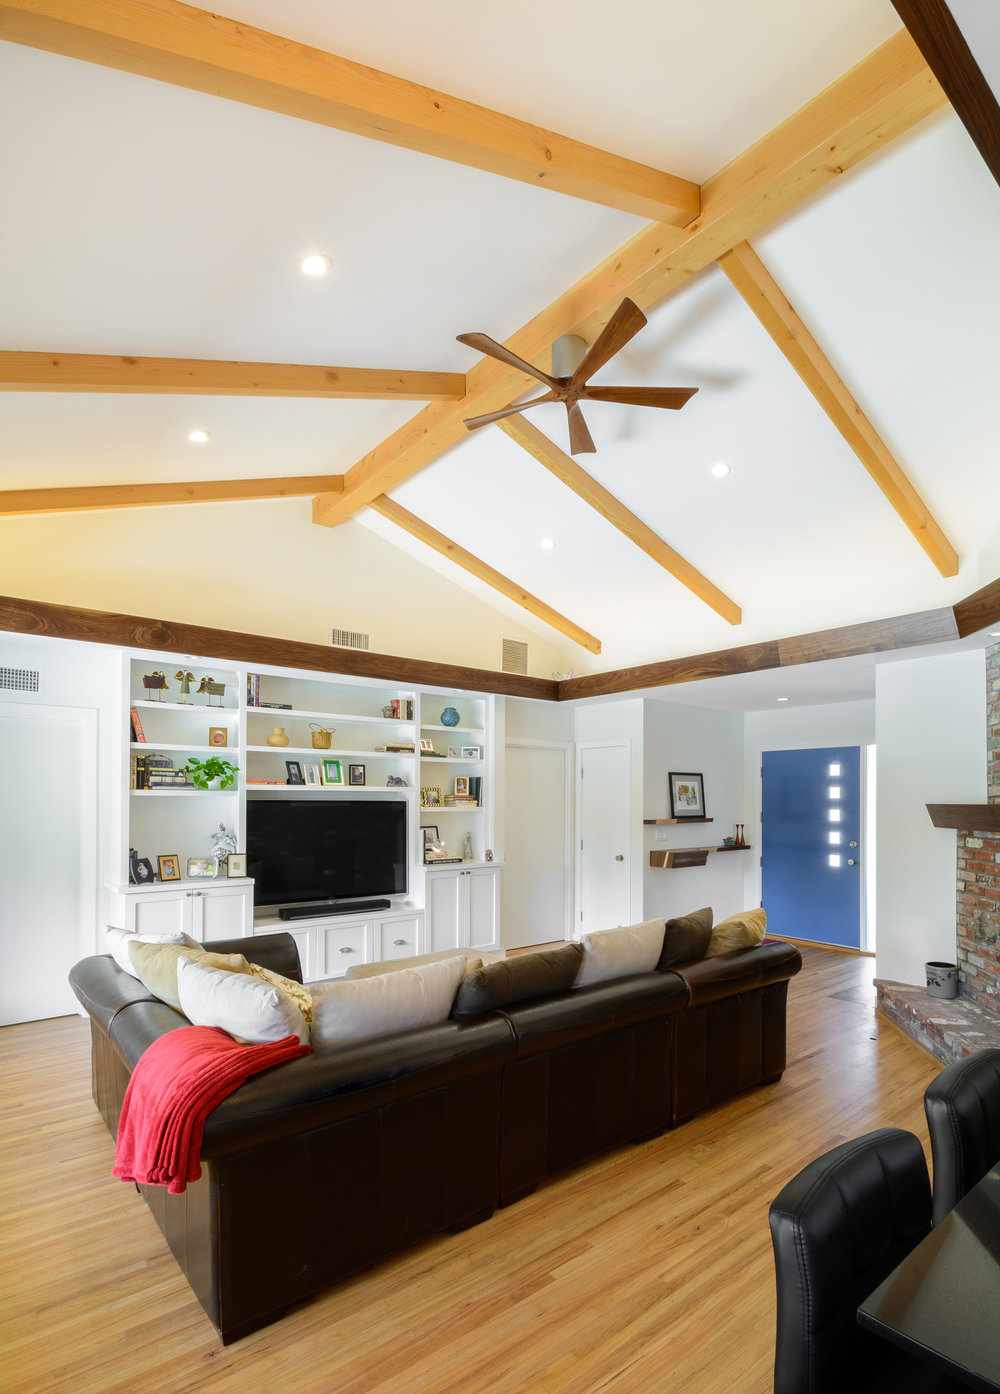 Bright and comfortable living room for this mid-century ranch remodel: white walls and Shaker style entertainment center, recessed lighting and a cathedral ceiling with exposed wood beams